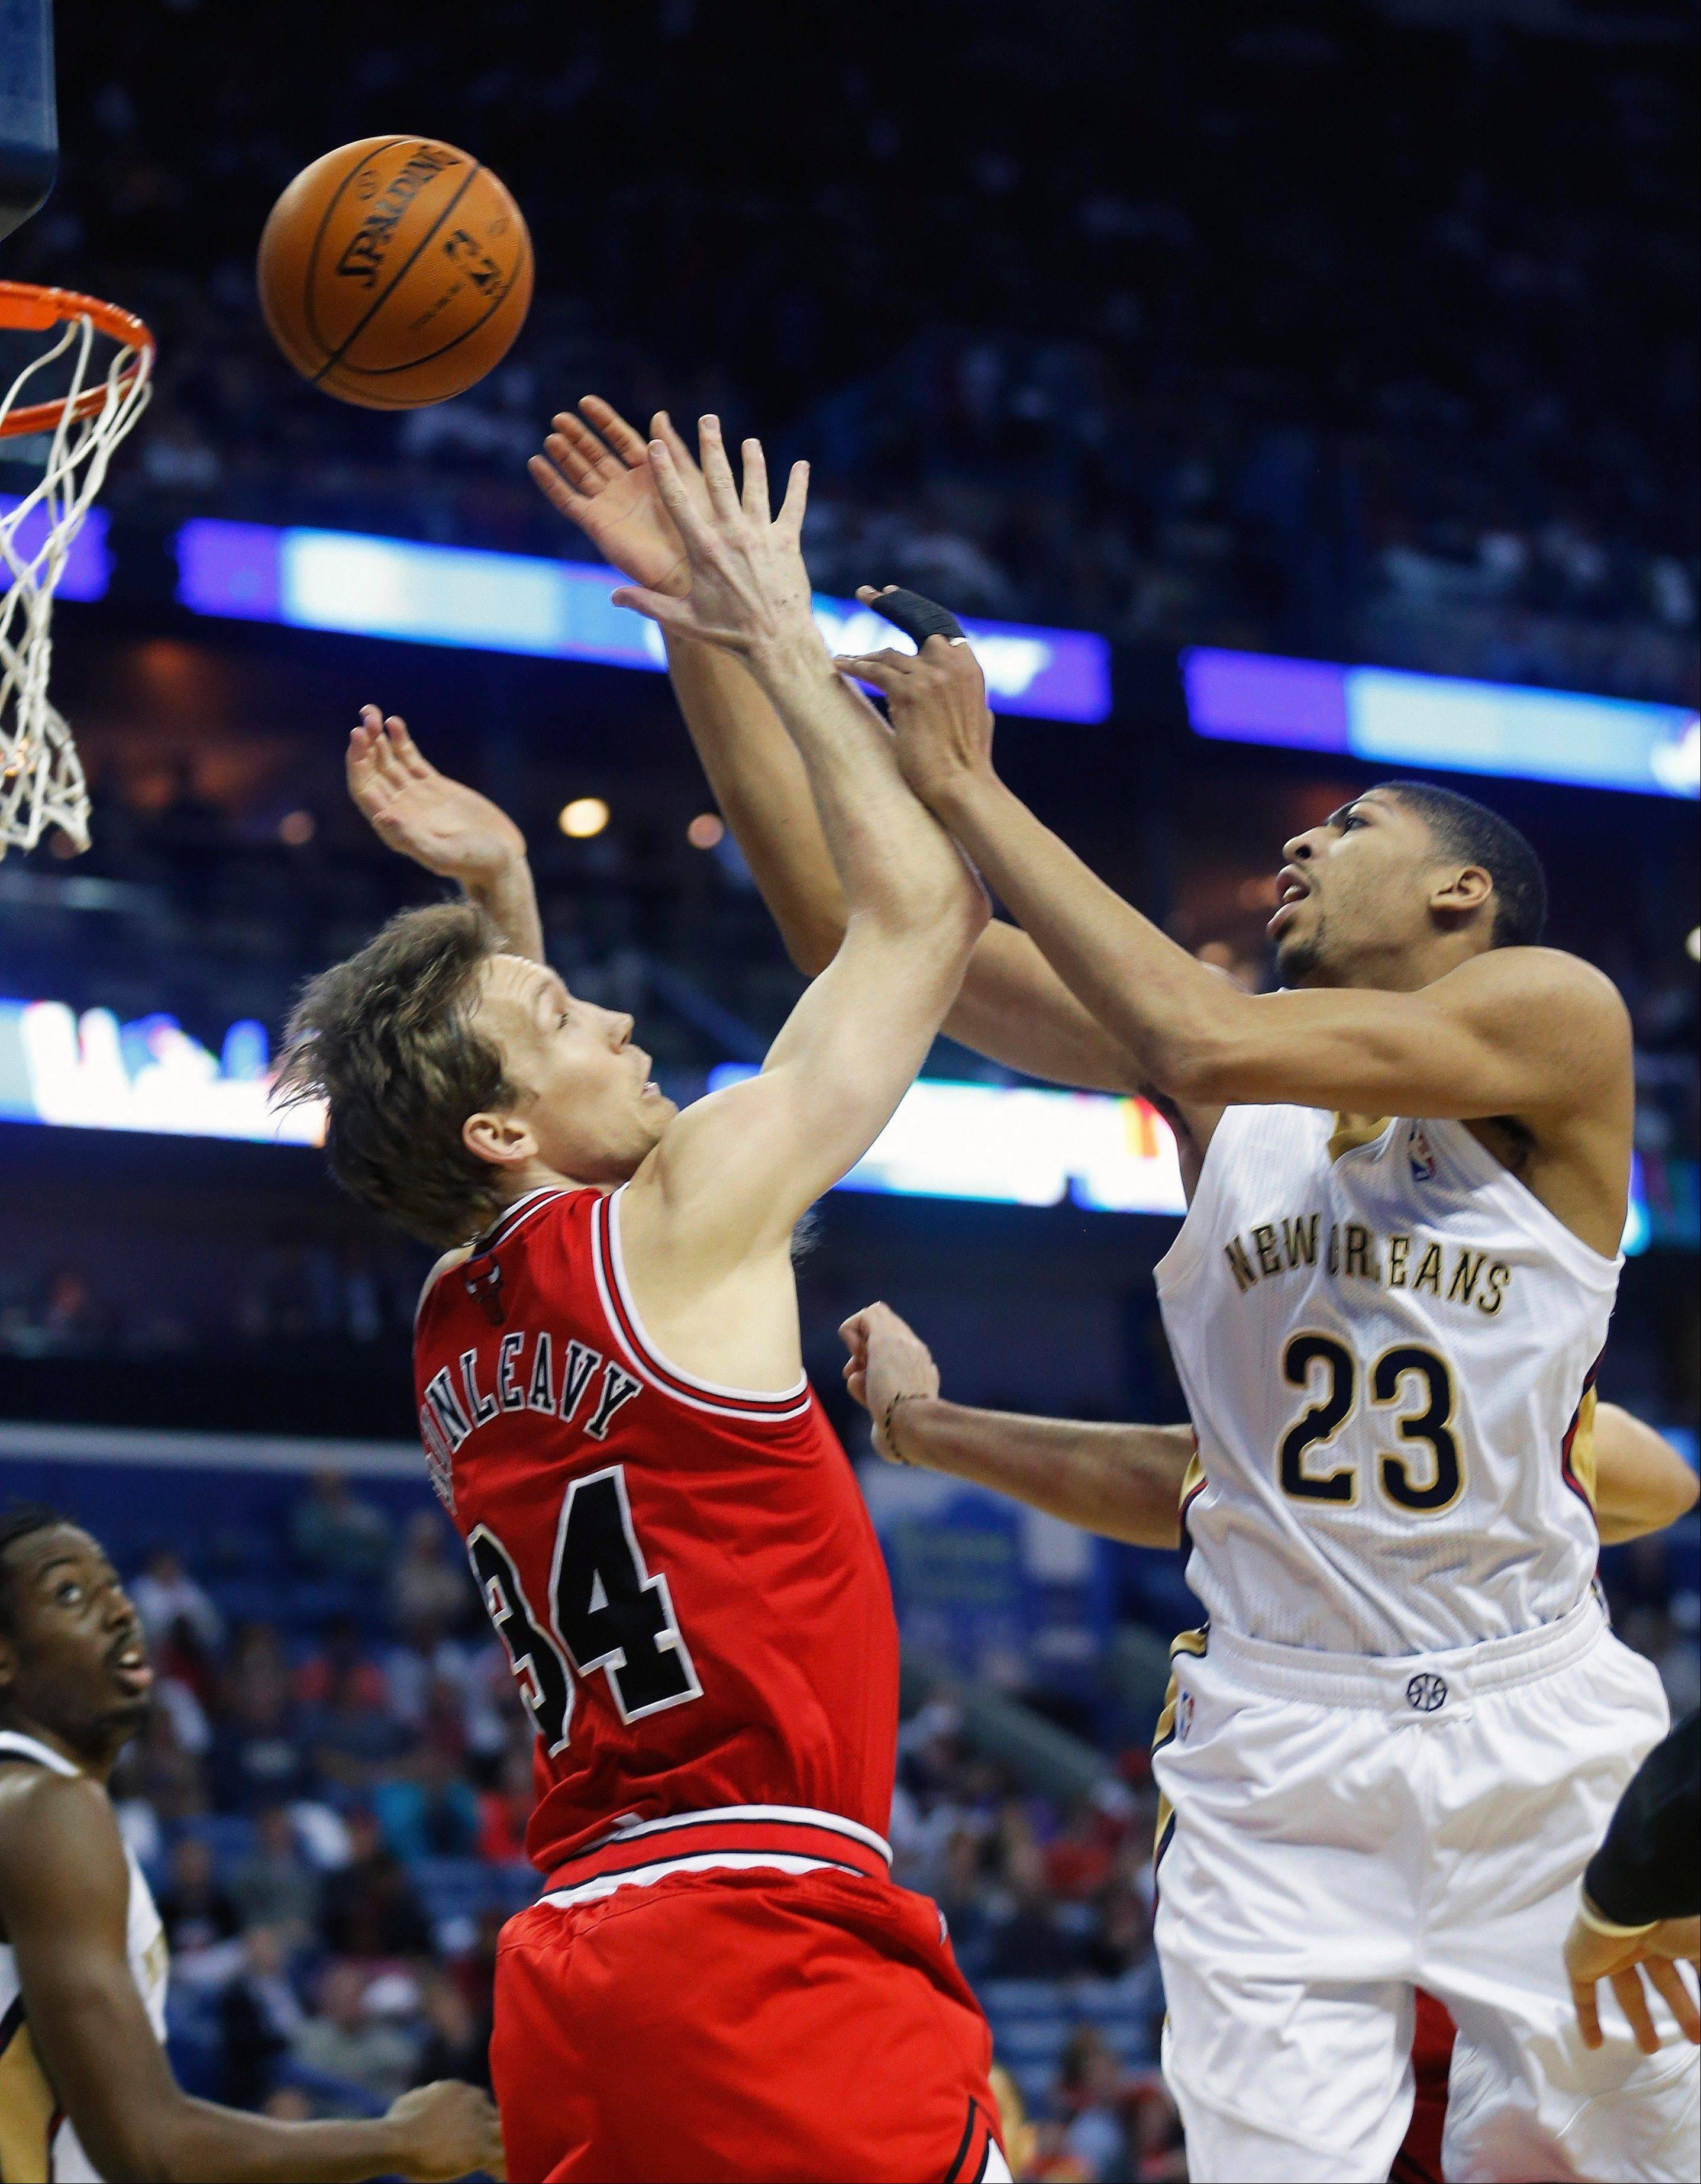 The Pelicans' Anthony Davis drives against Mike Dunleavy of the Bulls during the first half Saturday in New Orleans.